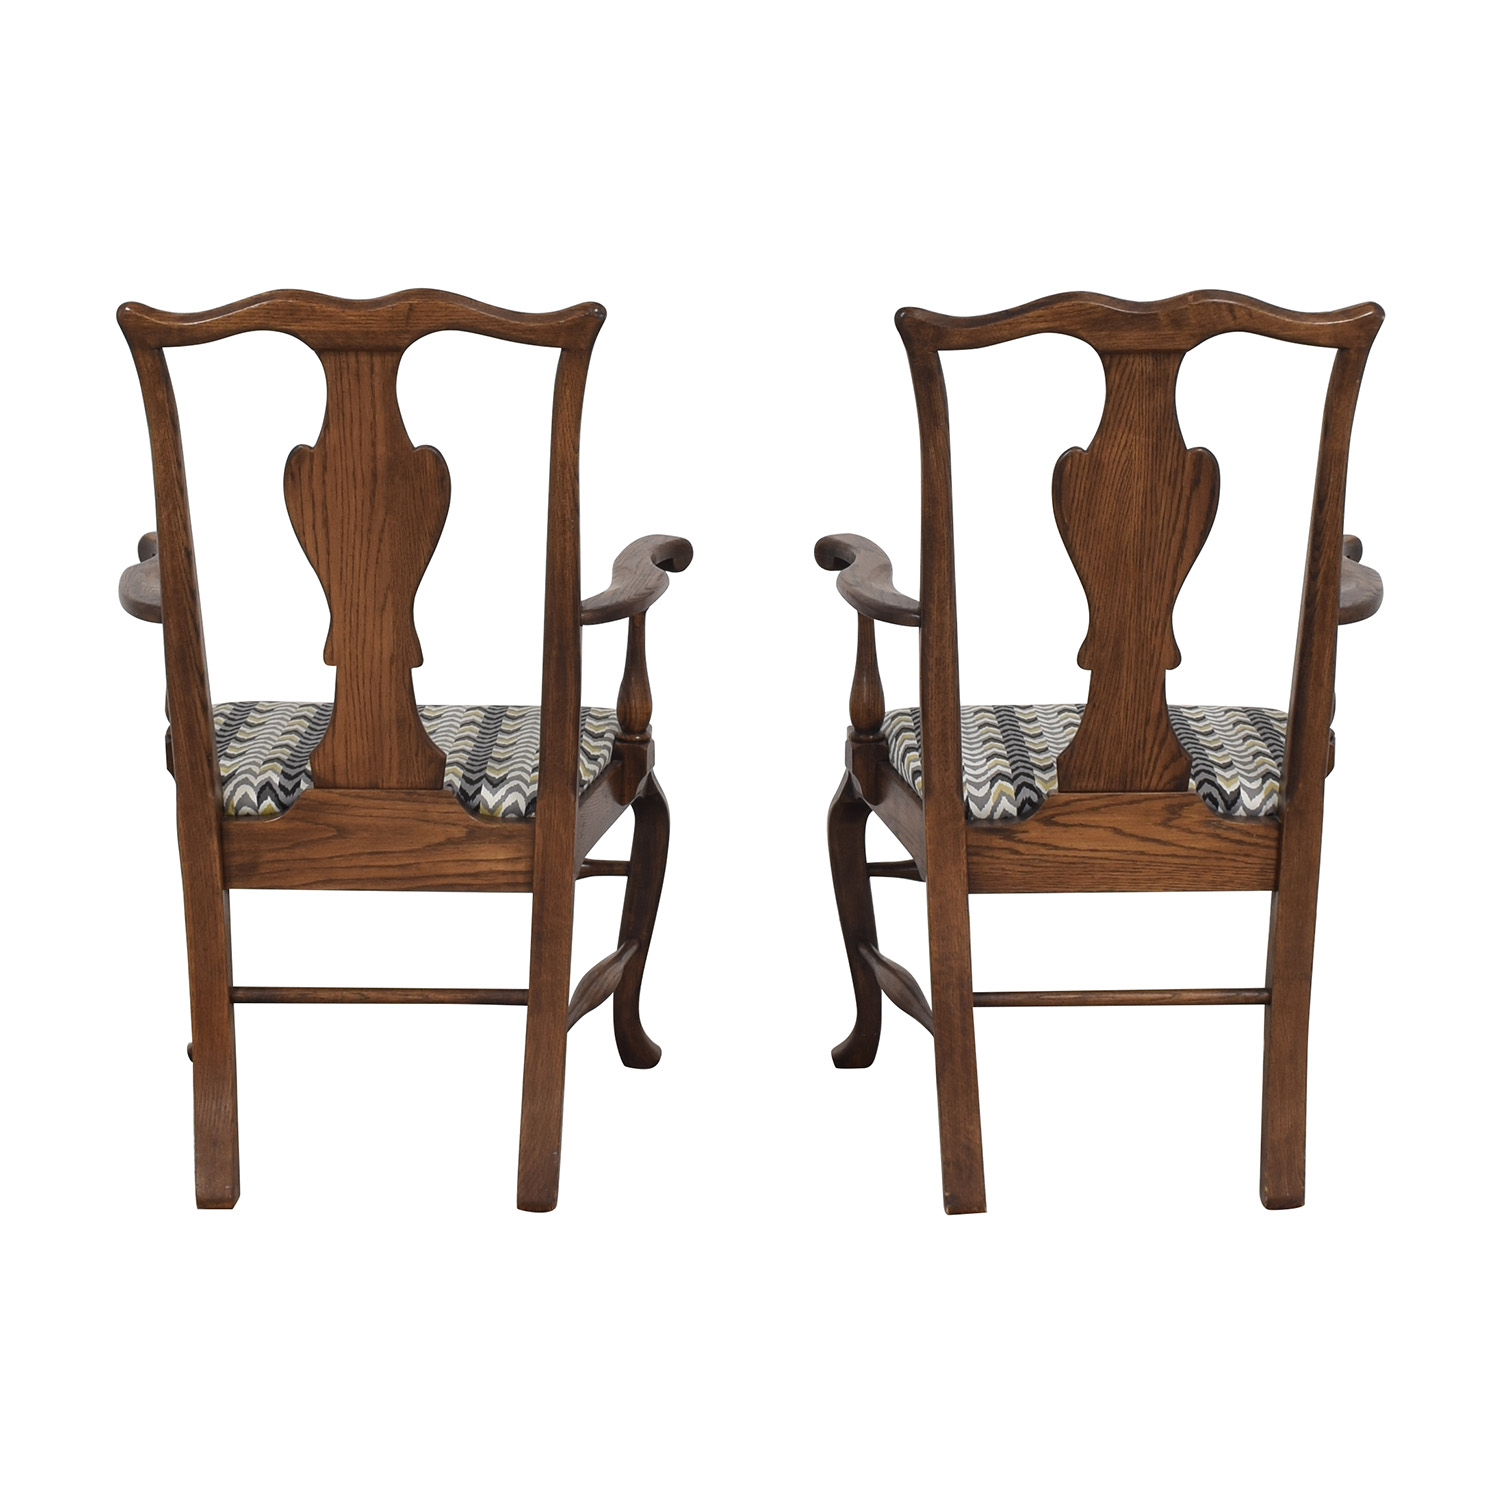 Ethan Allen Queen Anne Dining Arm Chairs / Dining Chairs